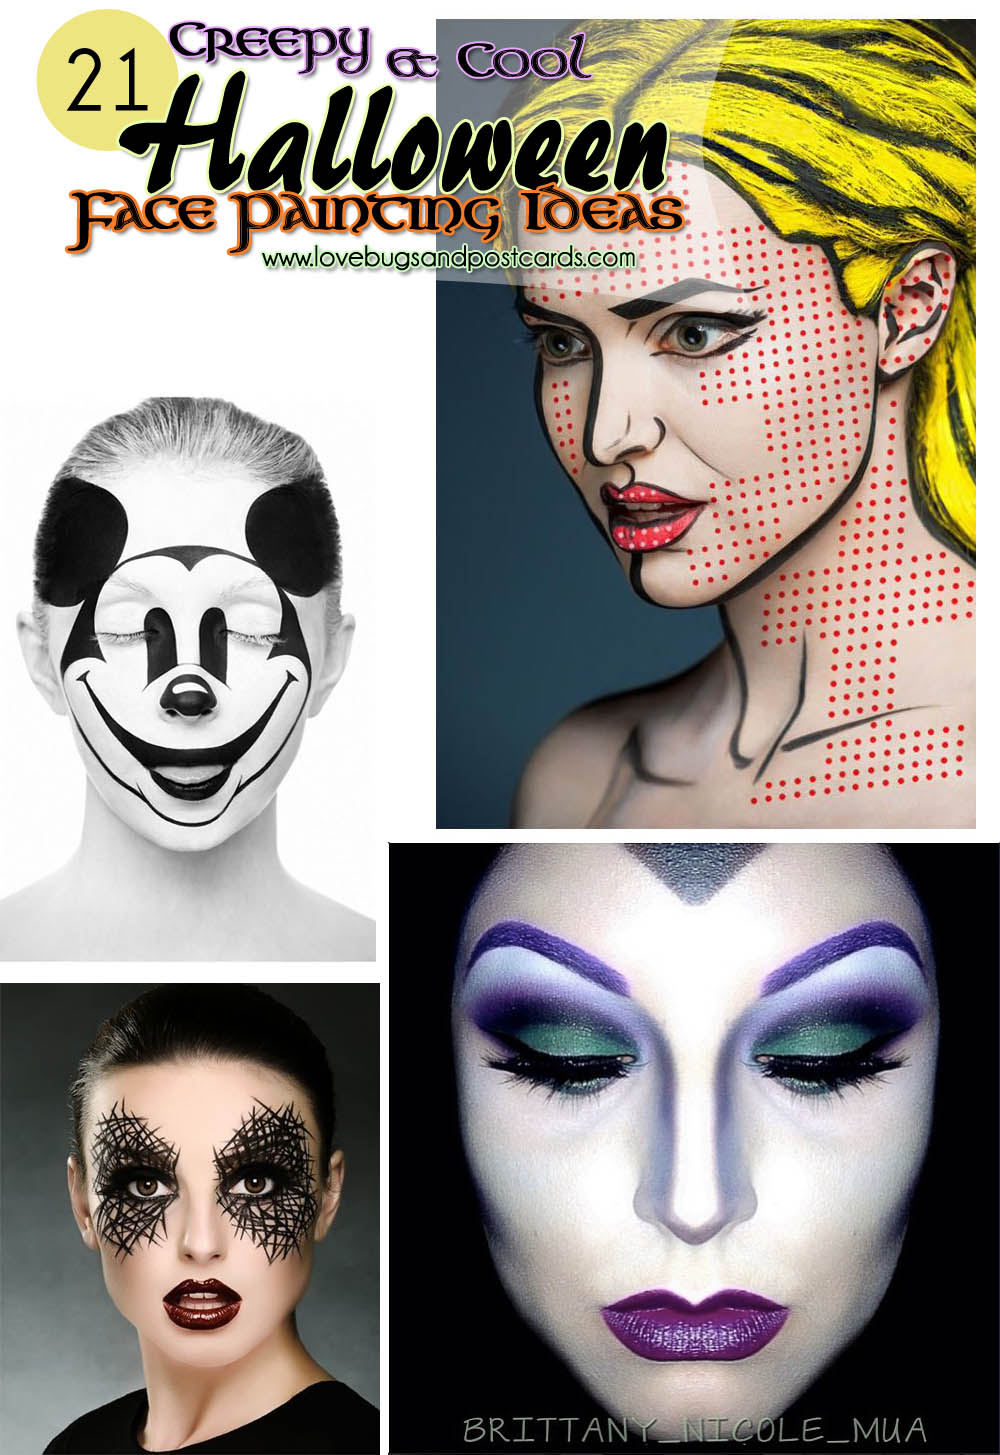 21 Creepy And Cool Halloween Face Painting Ideas Lovebugs And Postcards